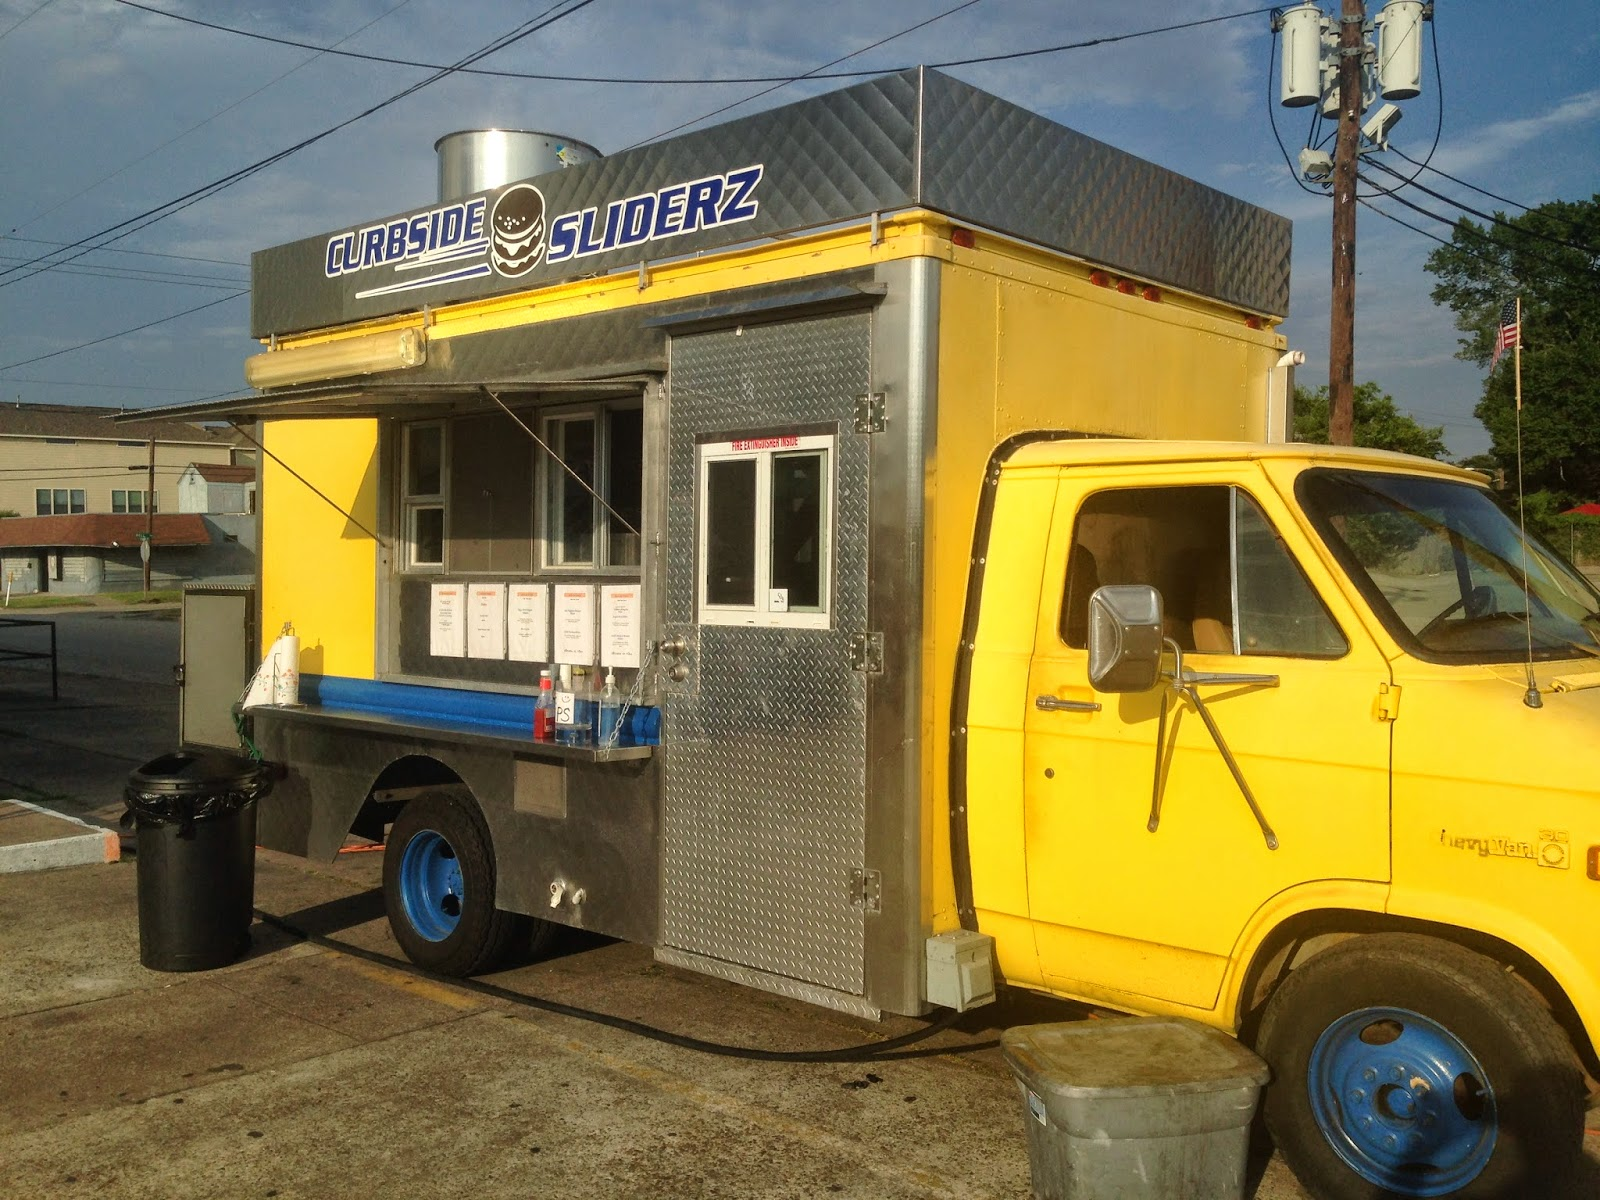 Curbside Sliderz Food Truck, Houston, TX